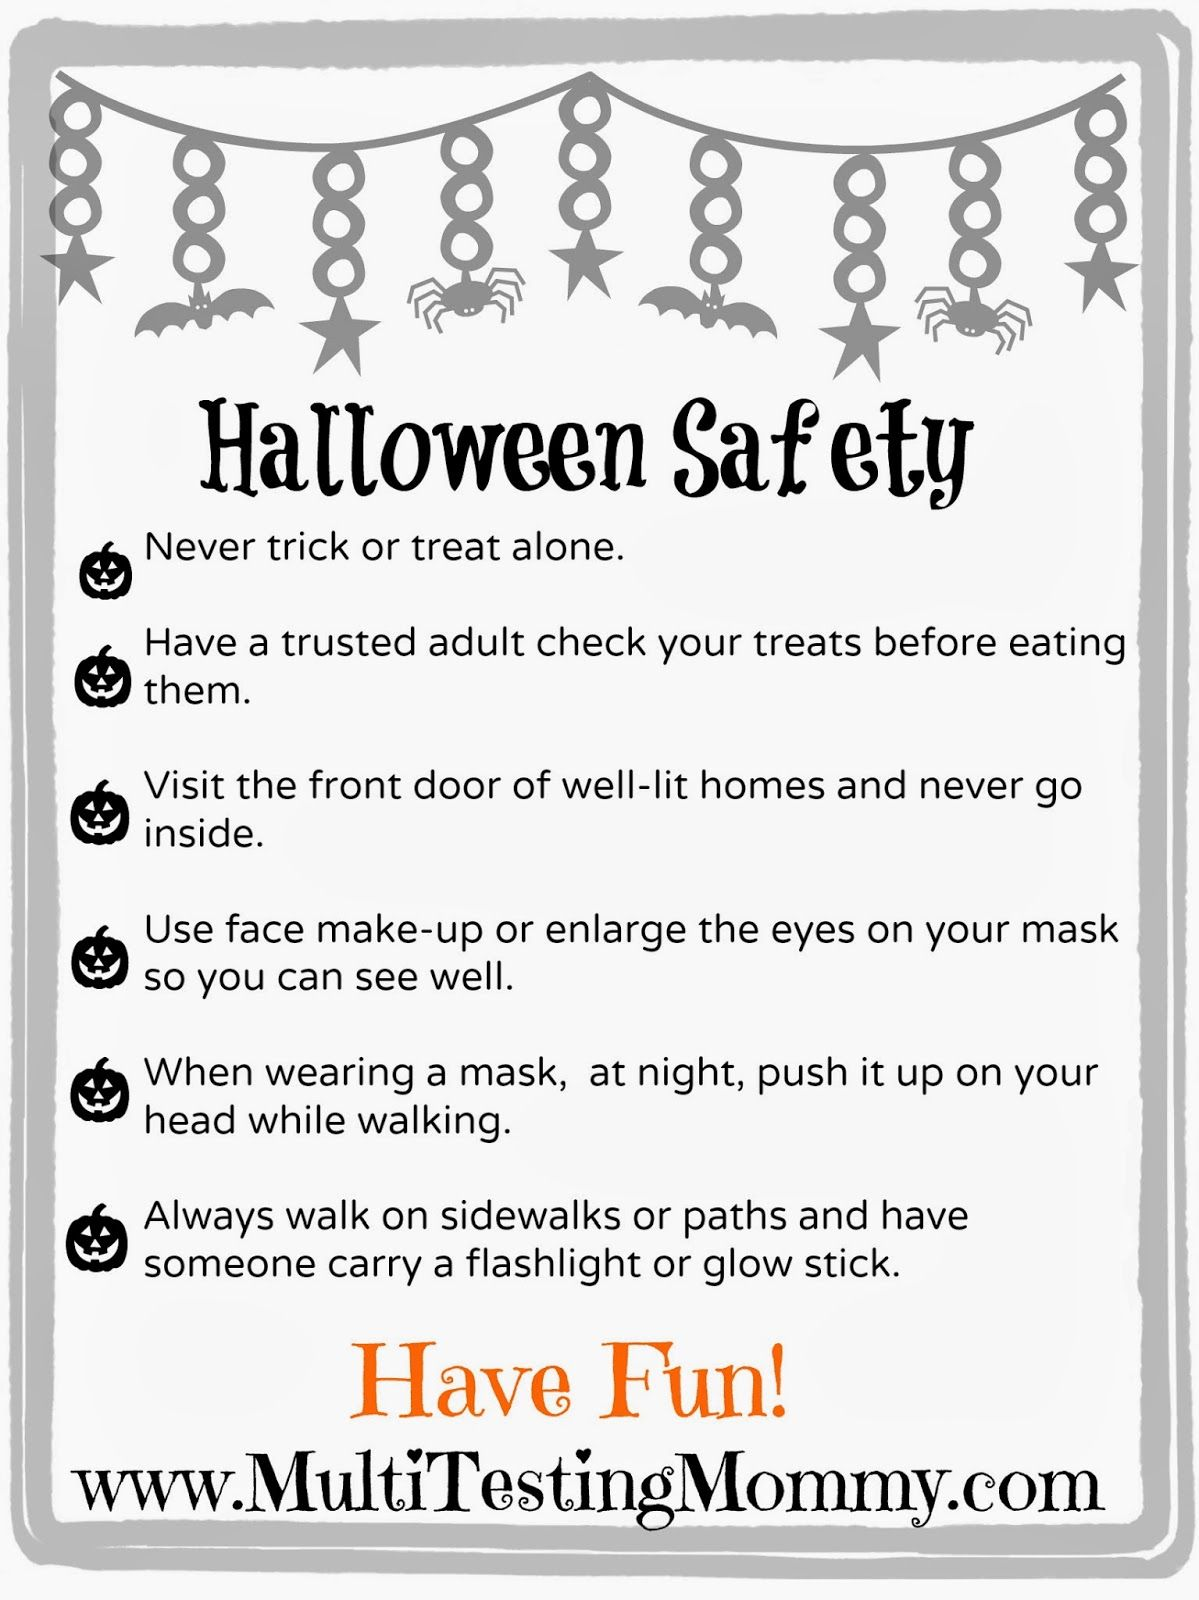 Halloween Safety Tips for Kids {Printable Halloween